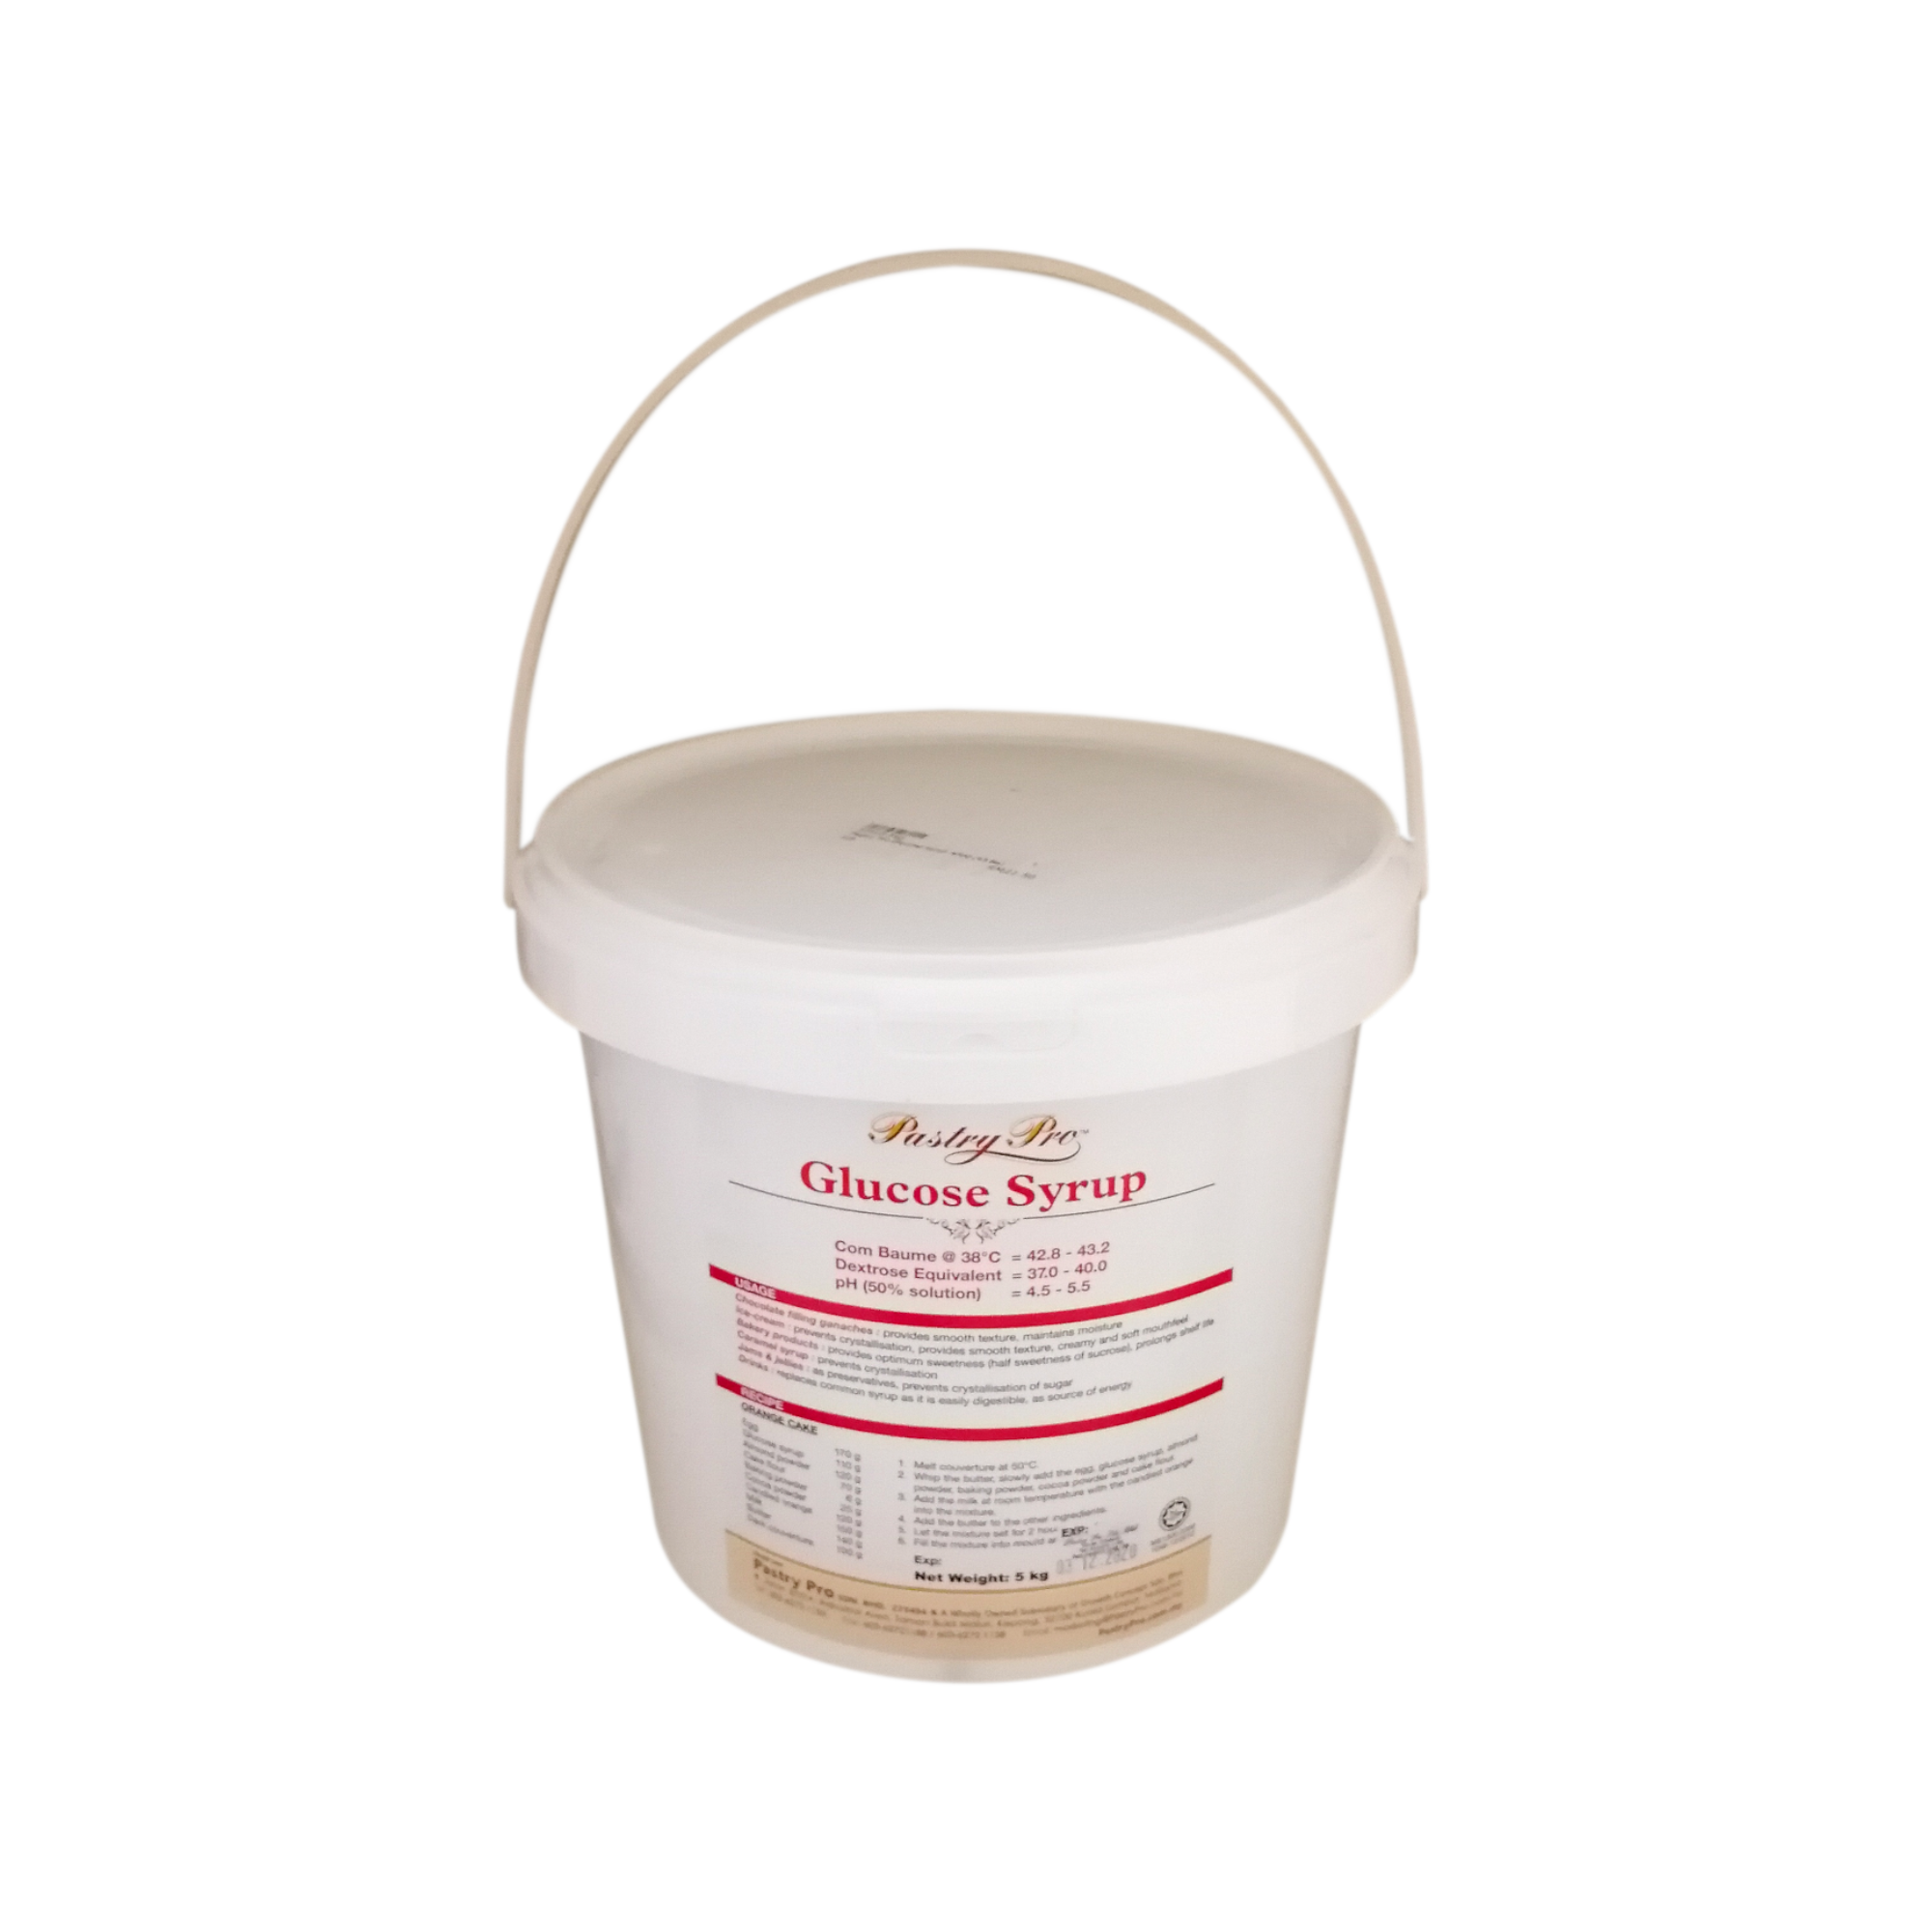 PASTRY PRO, Glucose Syrup, 5 kg